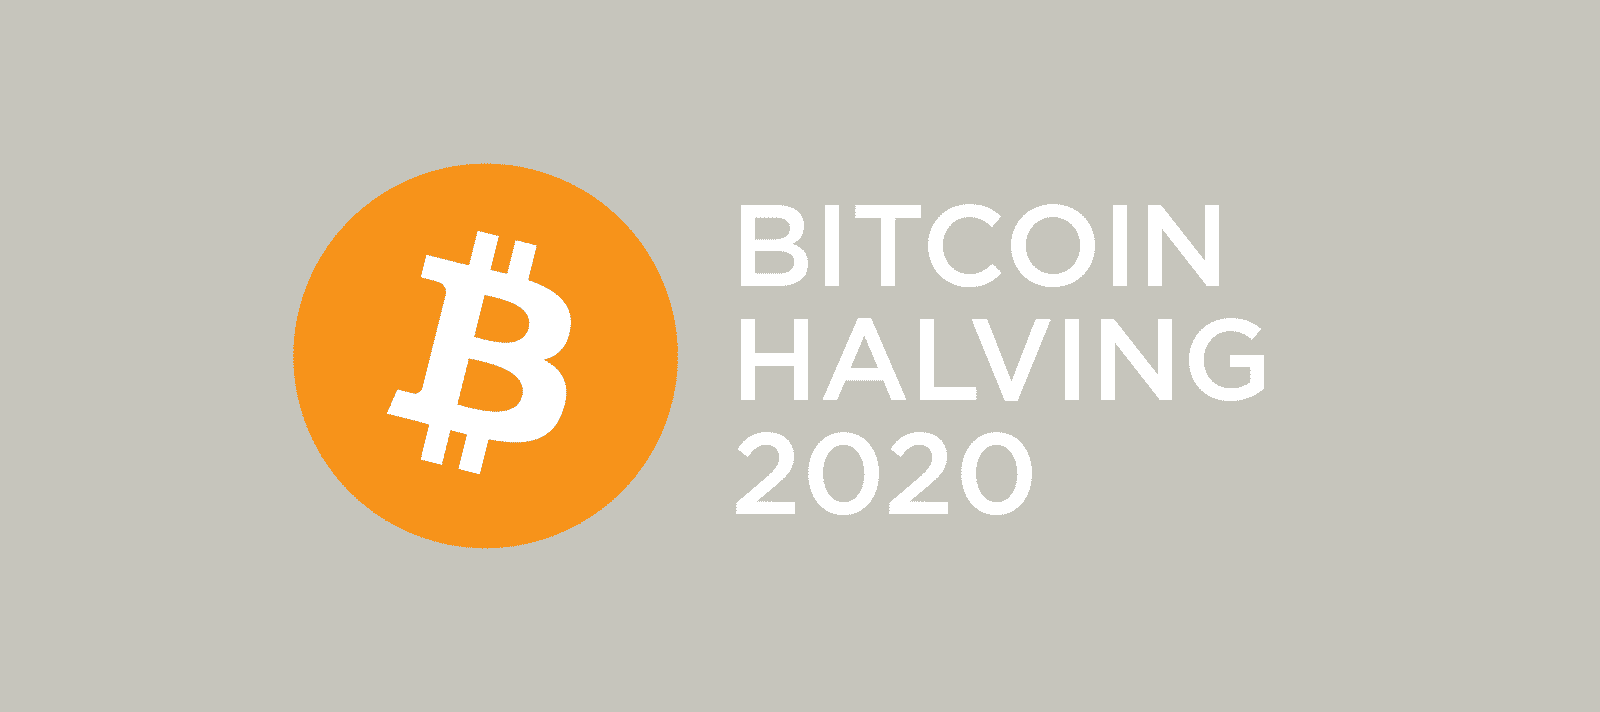 Bitcoin Logo with Text Bitcoin Halving 2020